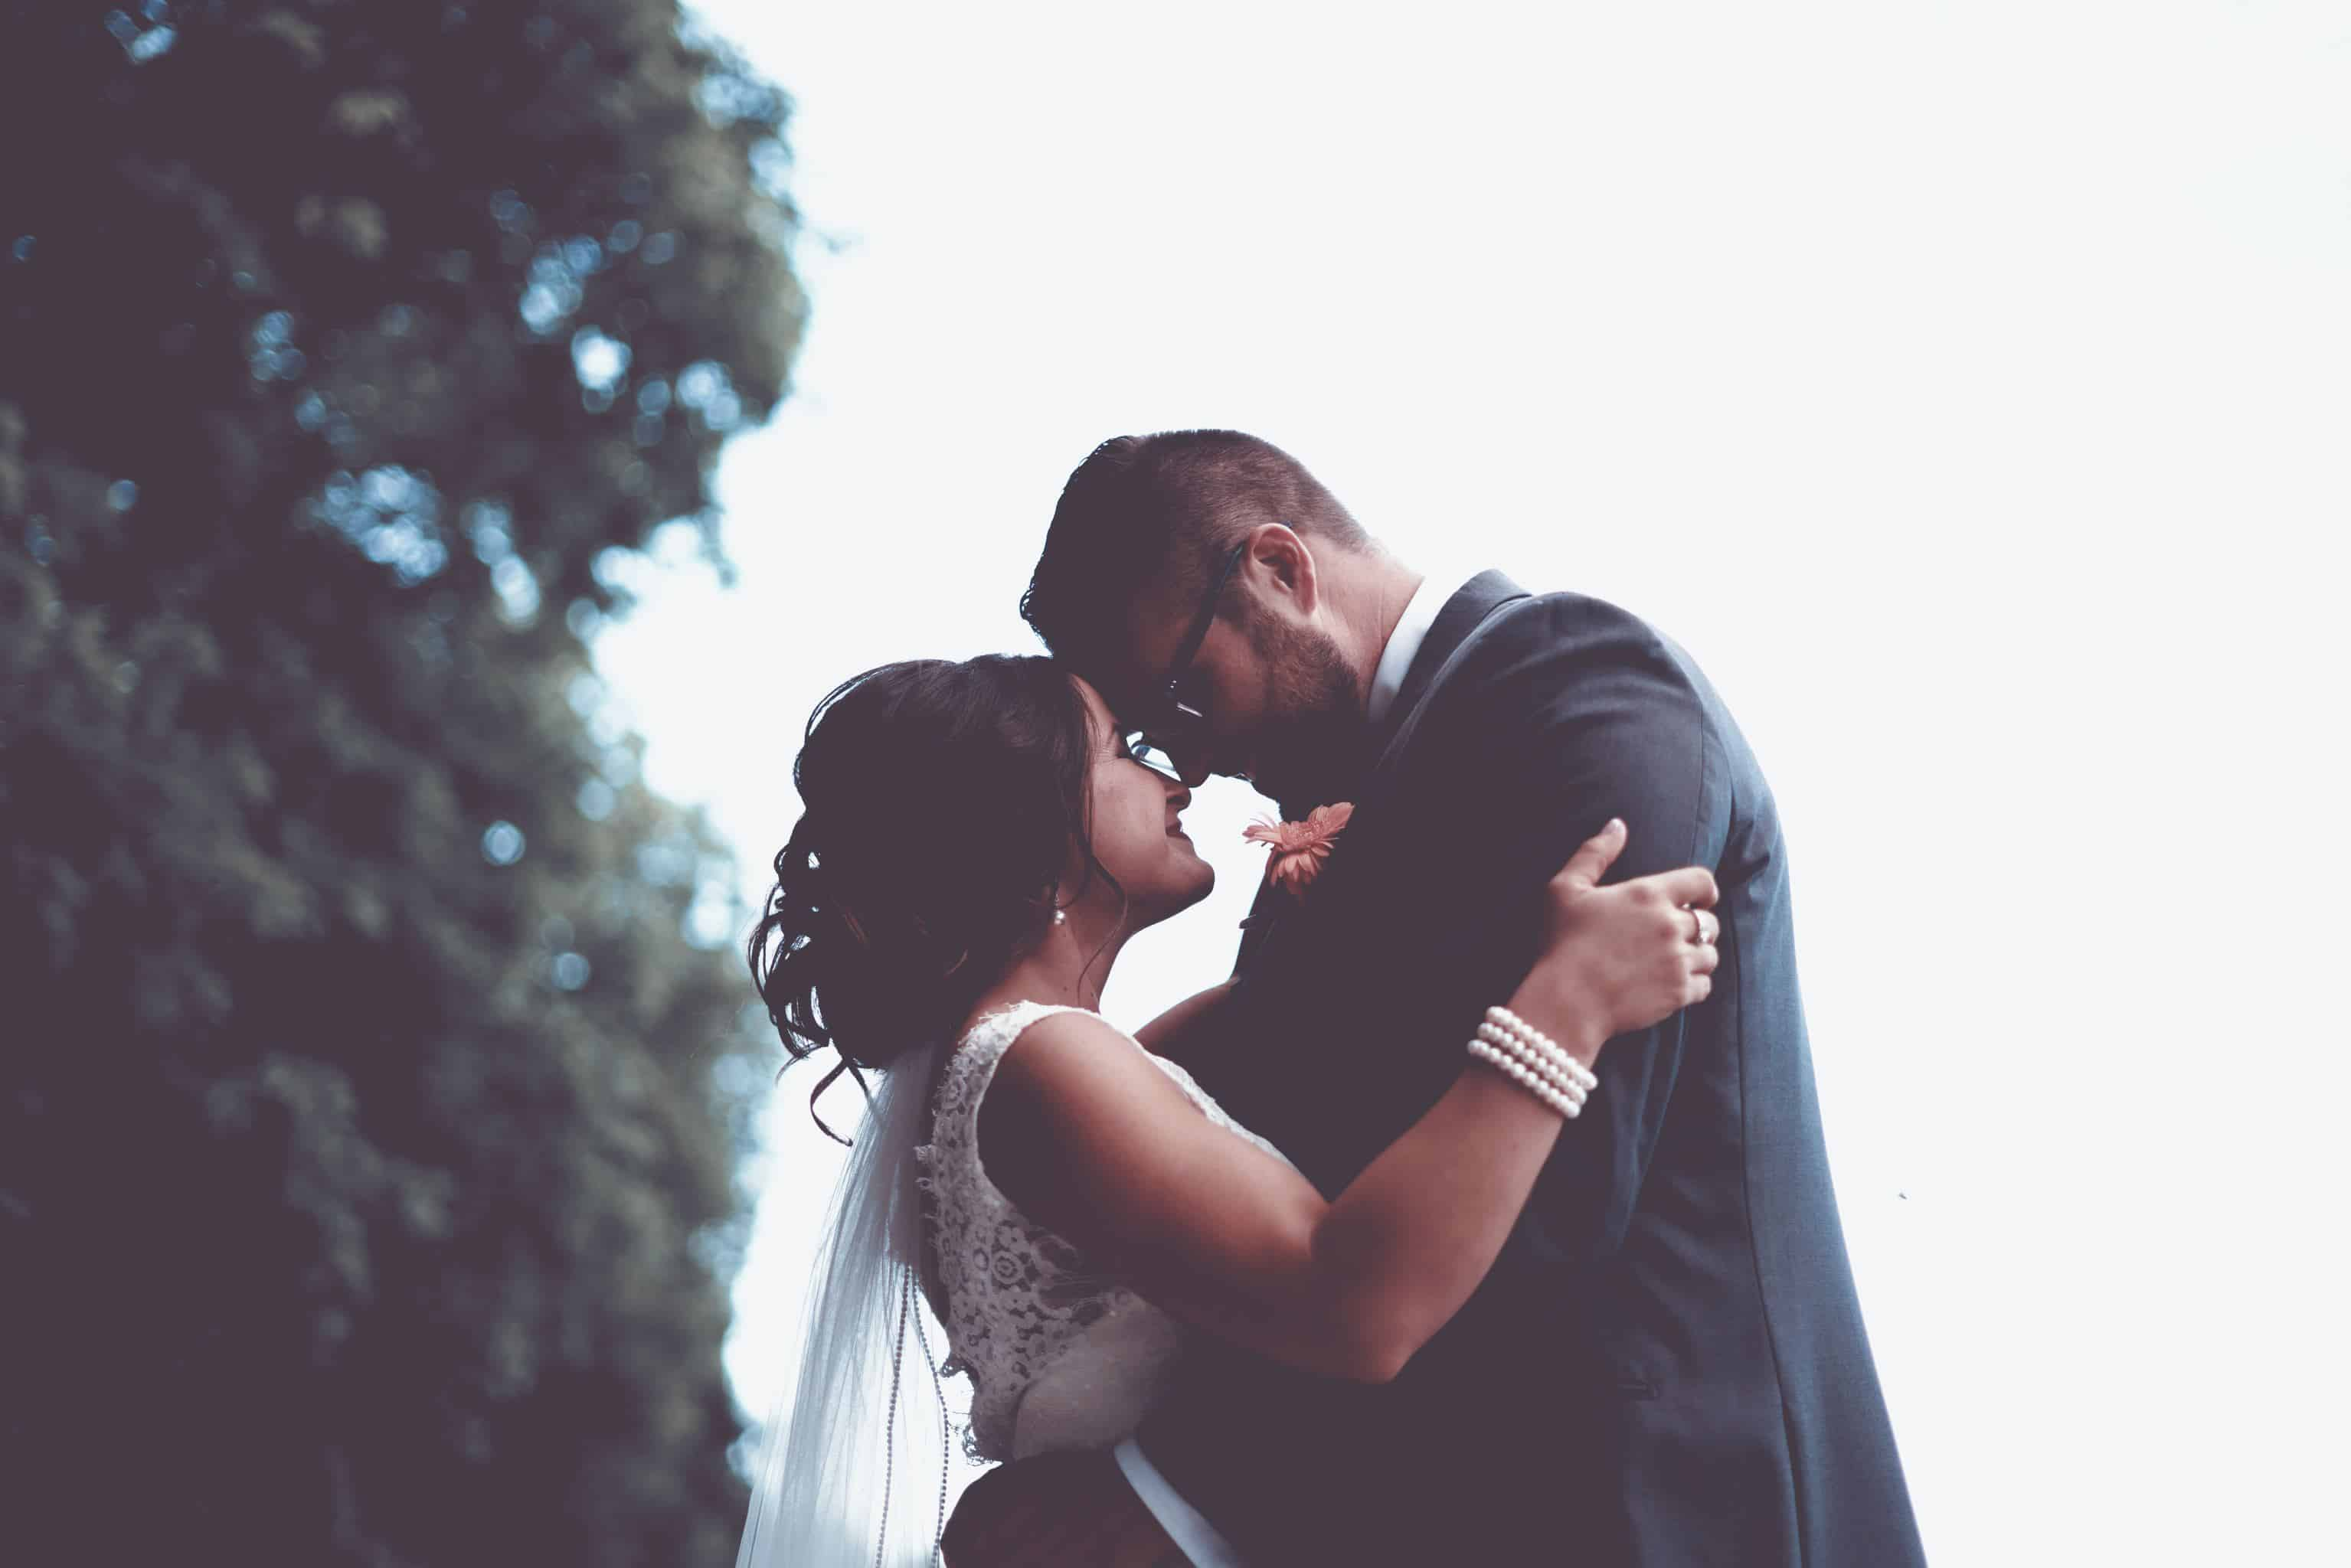 wedding video songs guide: bride and groom holding each other